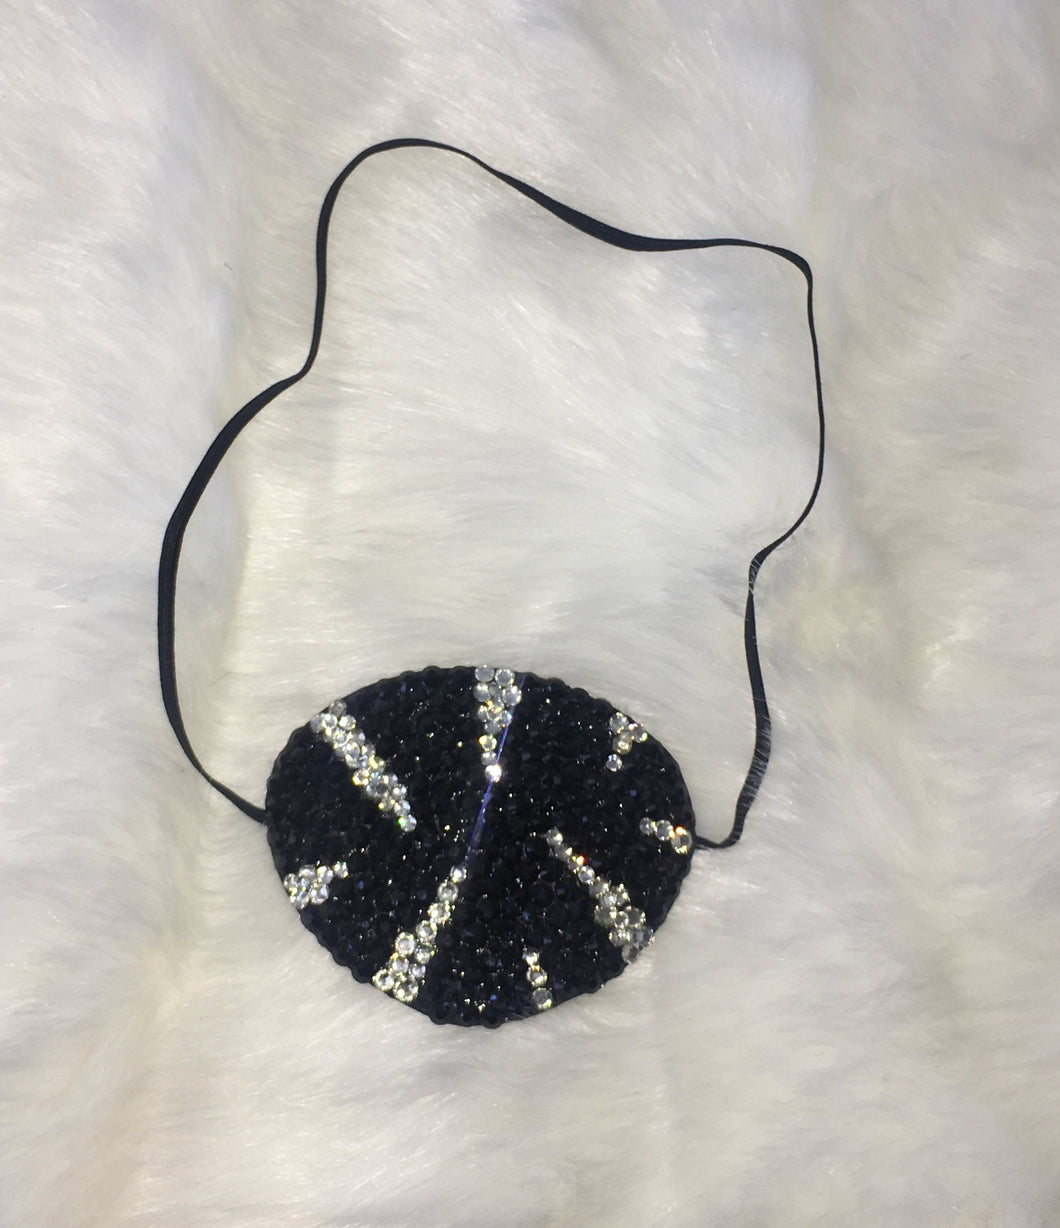 Black Eye Patch Bedazzled In Jet Black & Crystals